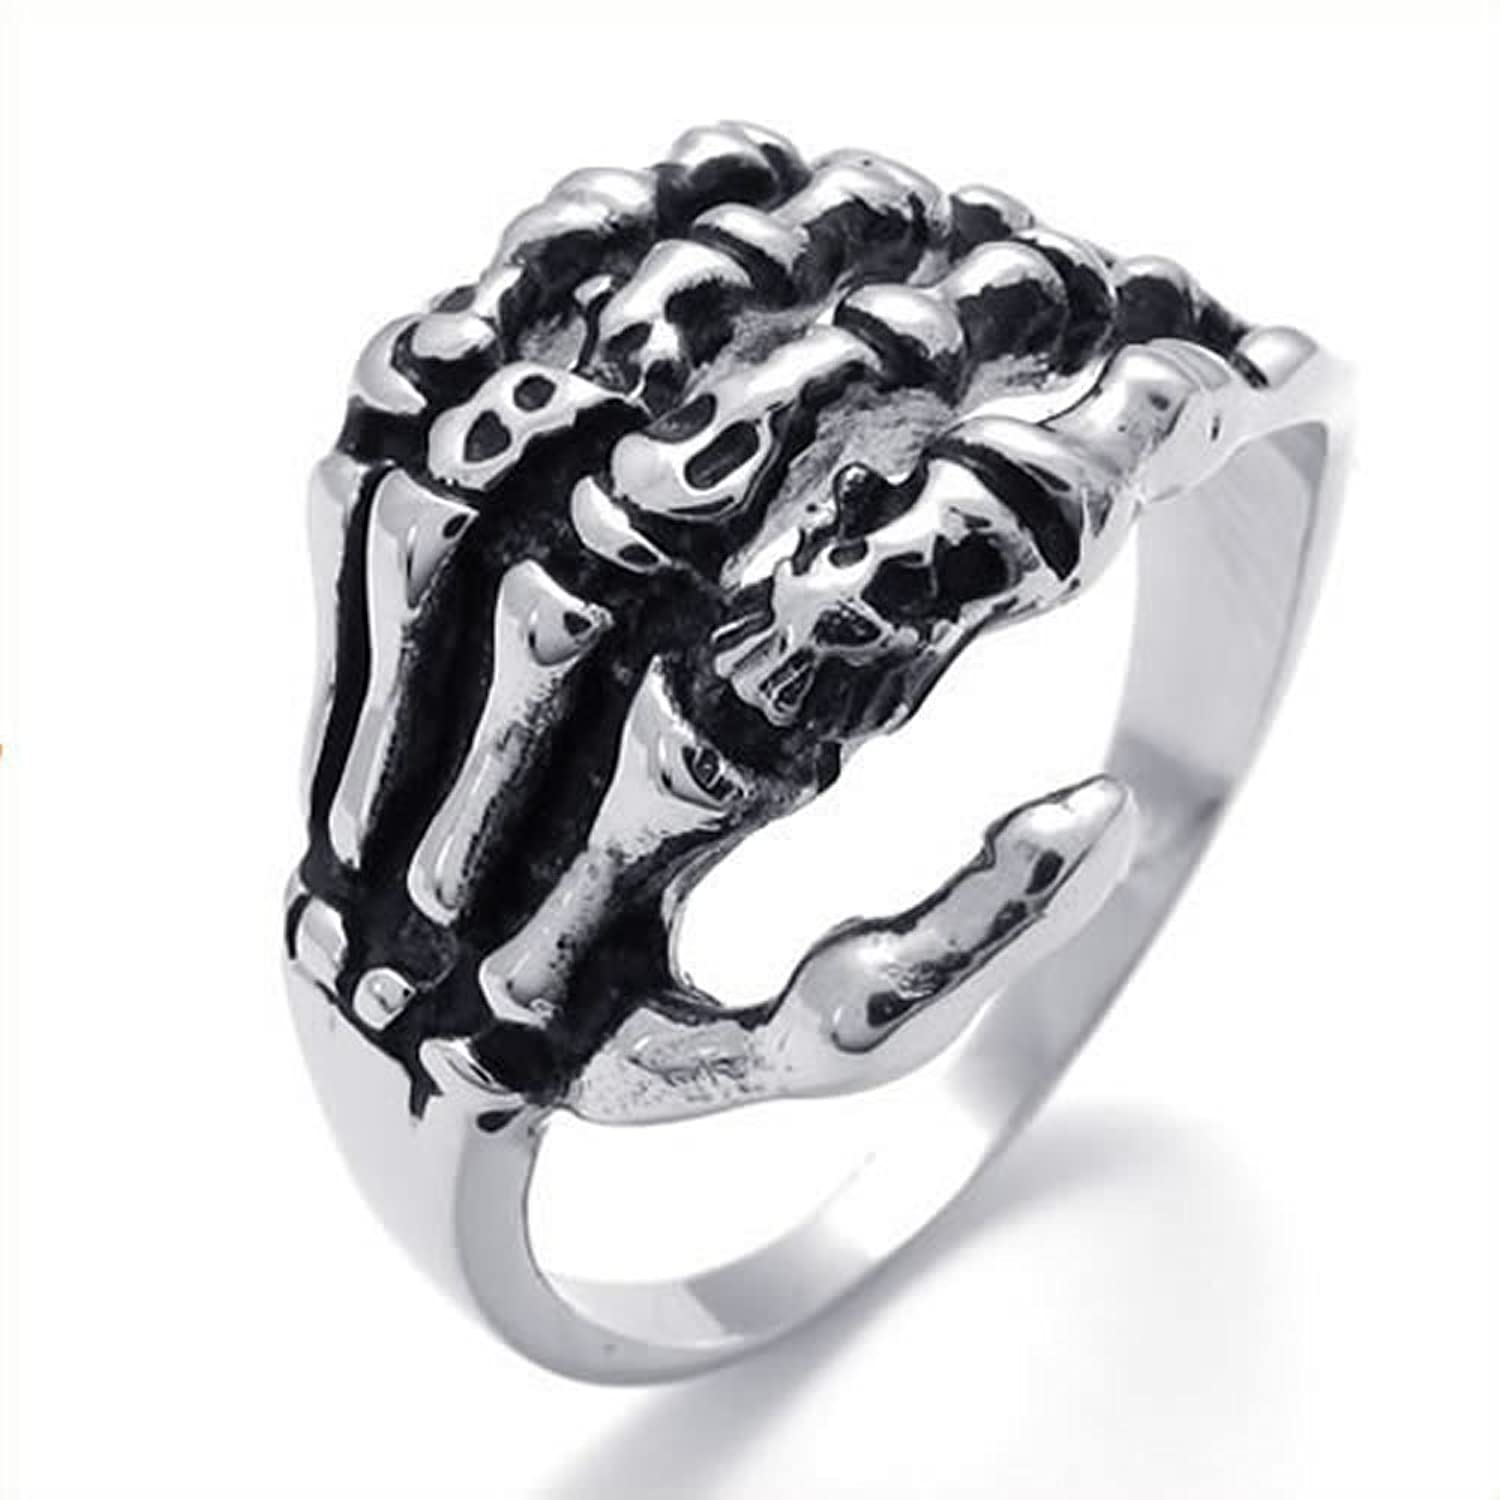 rings wvvlife skull pirate skeleton mens s products biker men